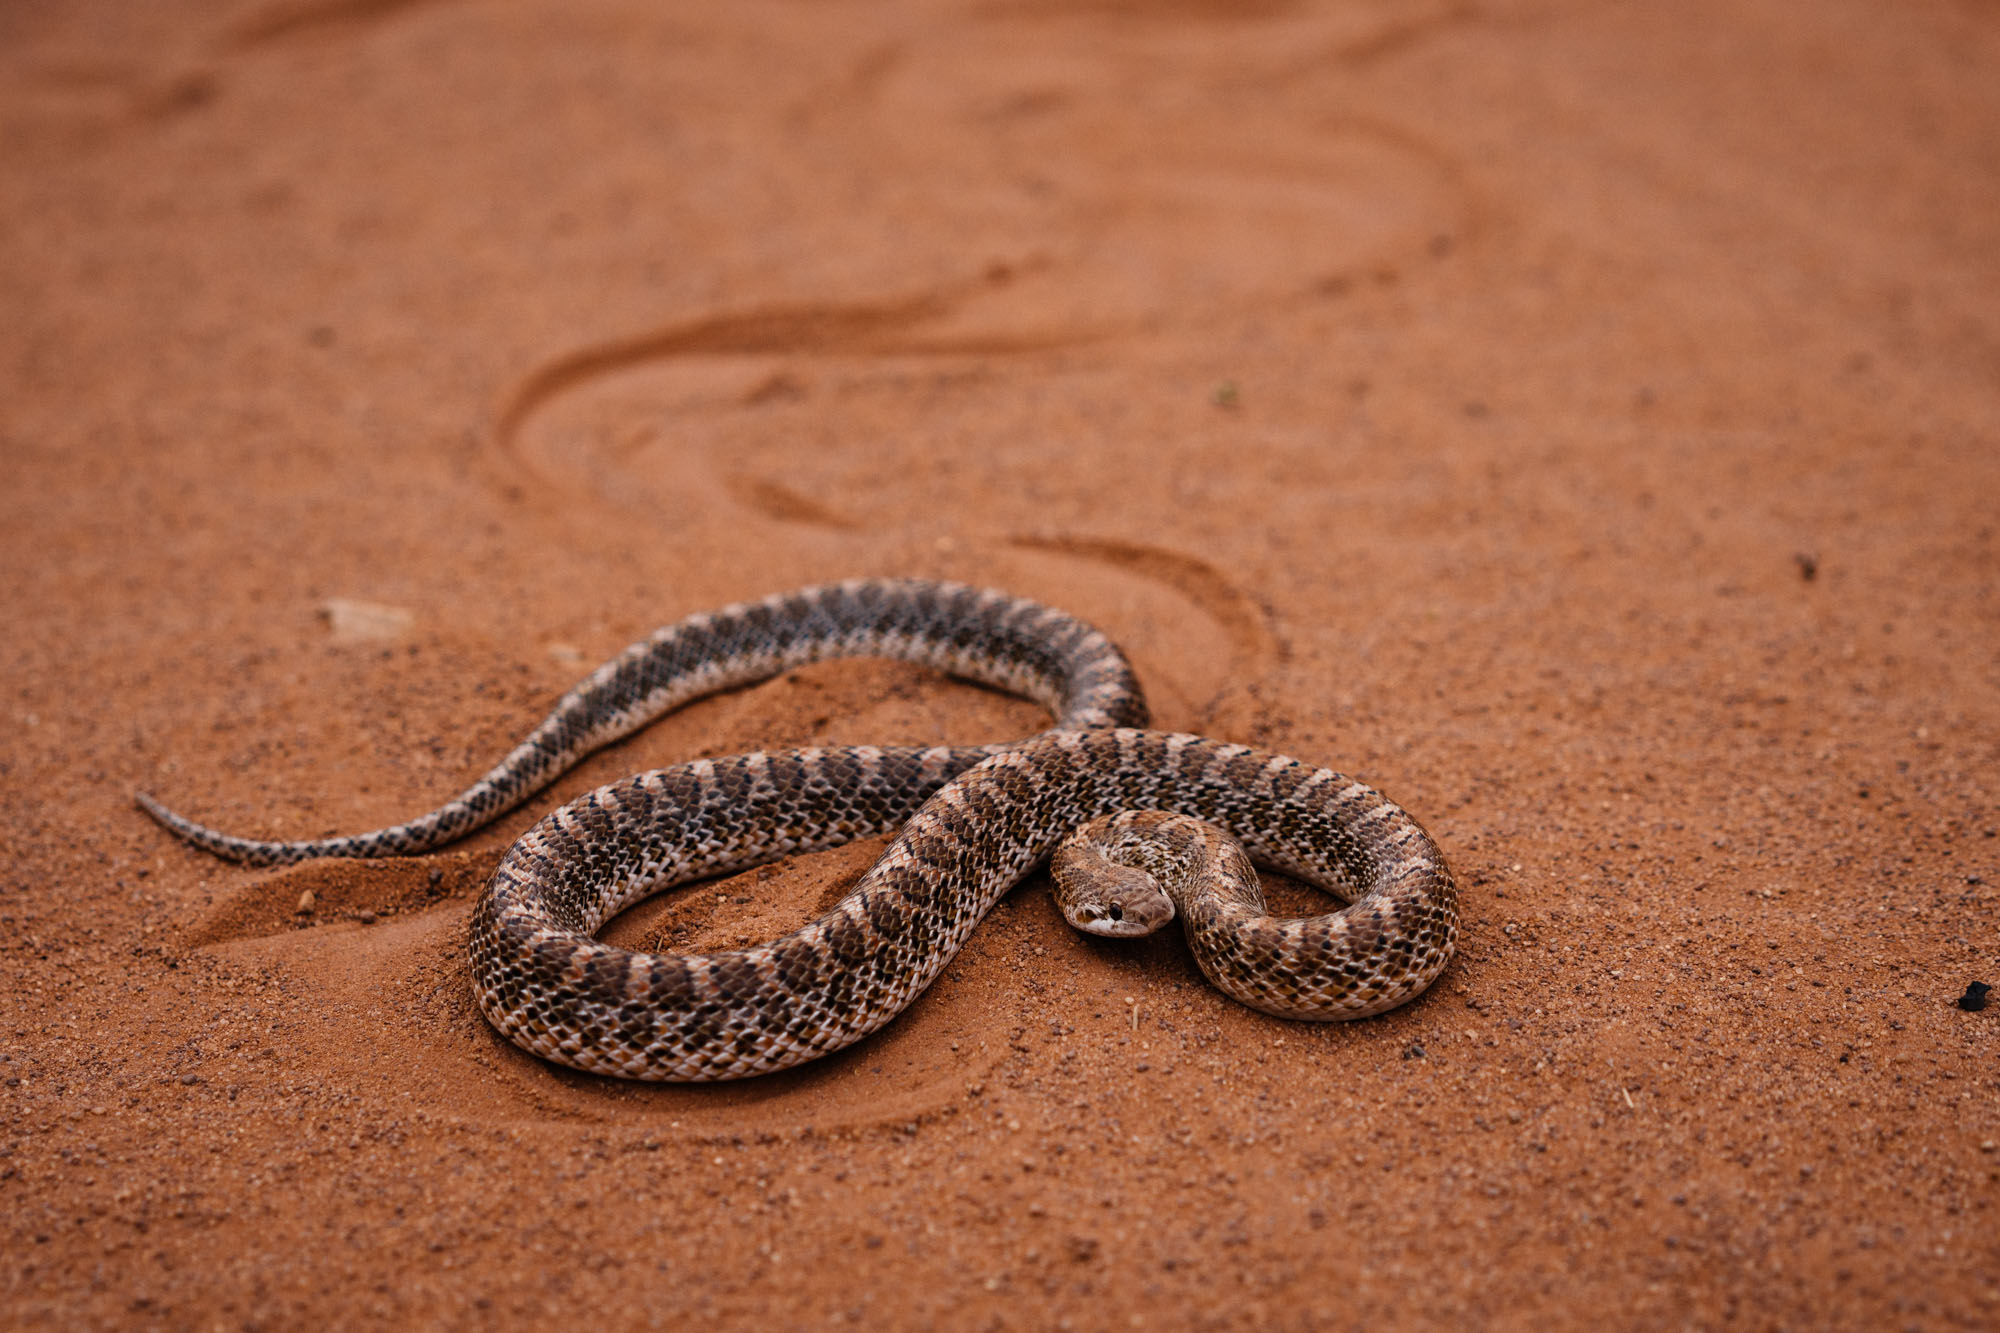 Snake in the road, Monument Valley, Arizona